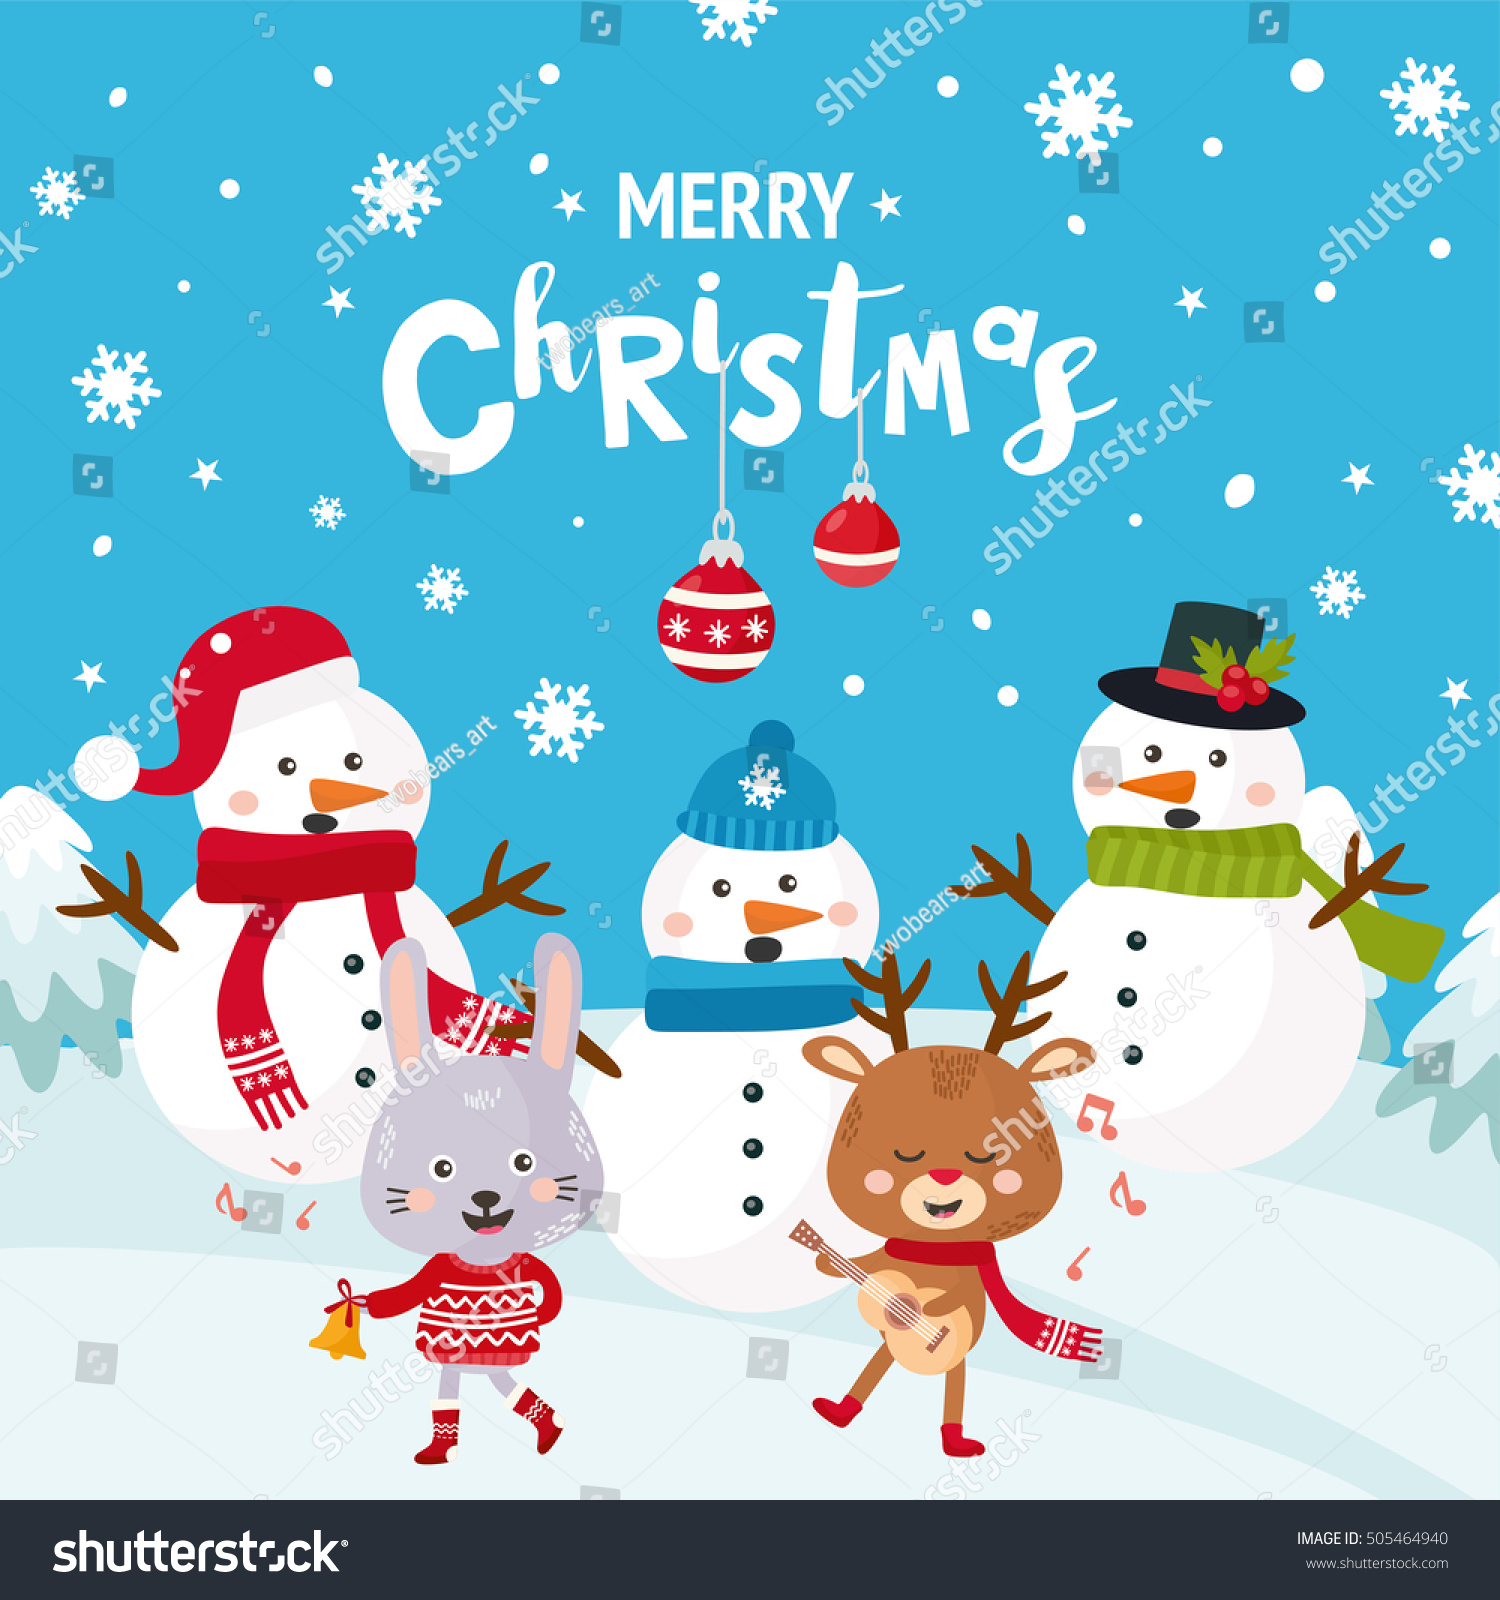 Merry Christmas Greeting Card With A Cute Snowman Happy New Year